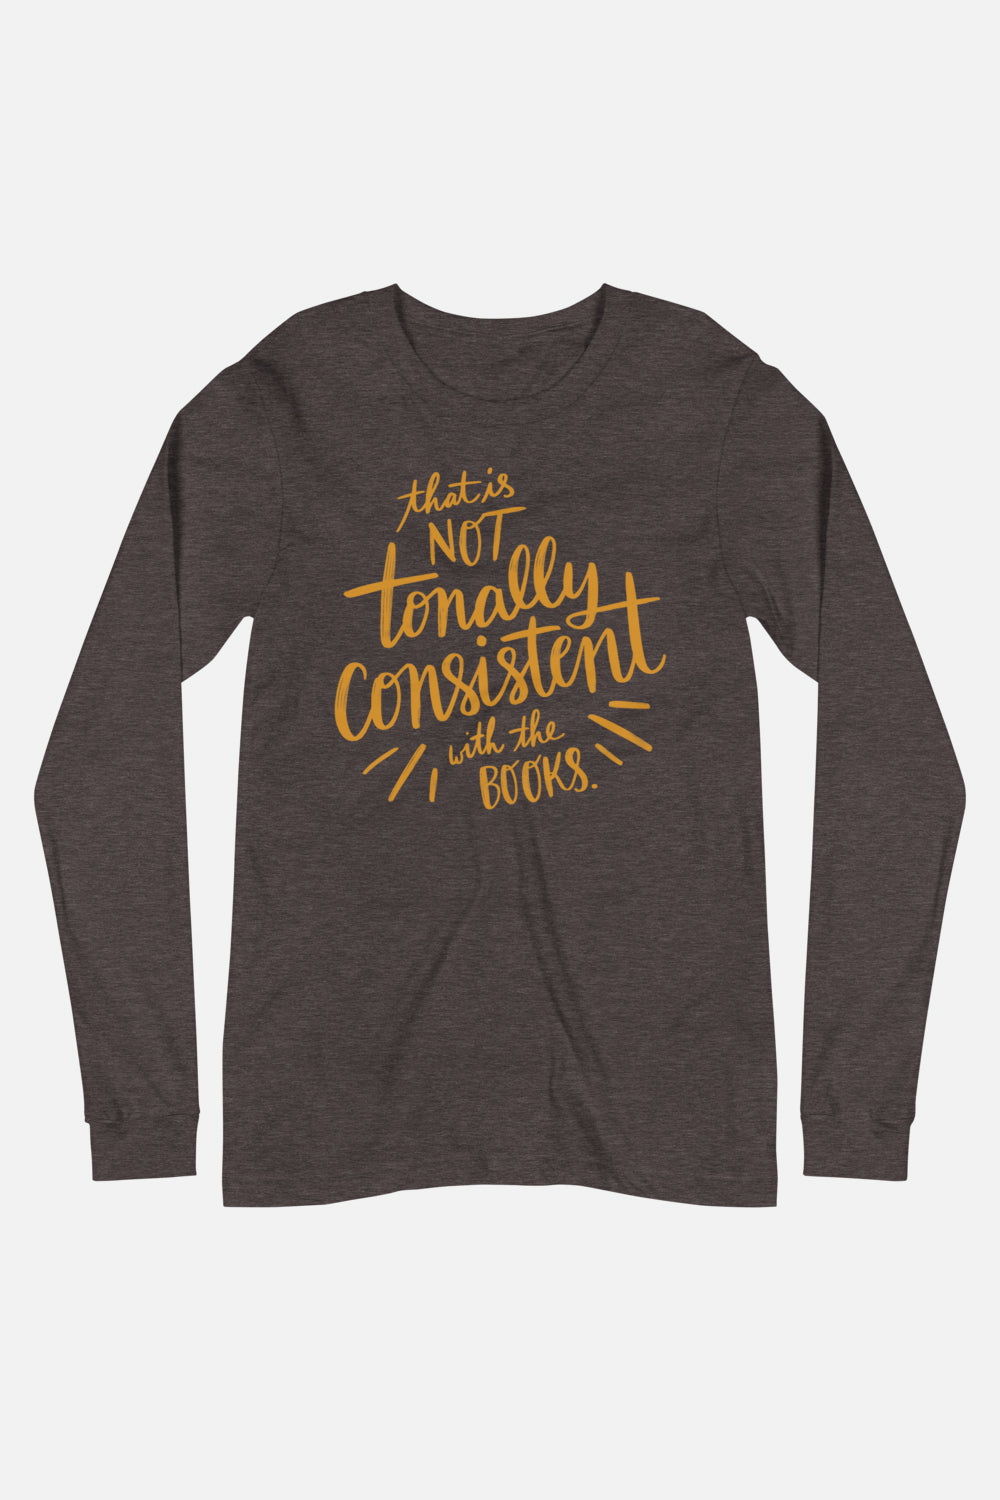 Tonally Consistent Unisex Long Sleeve Tee